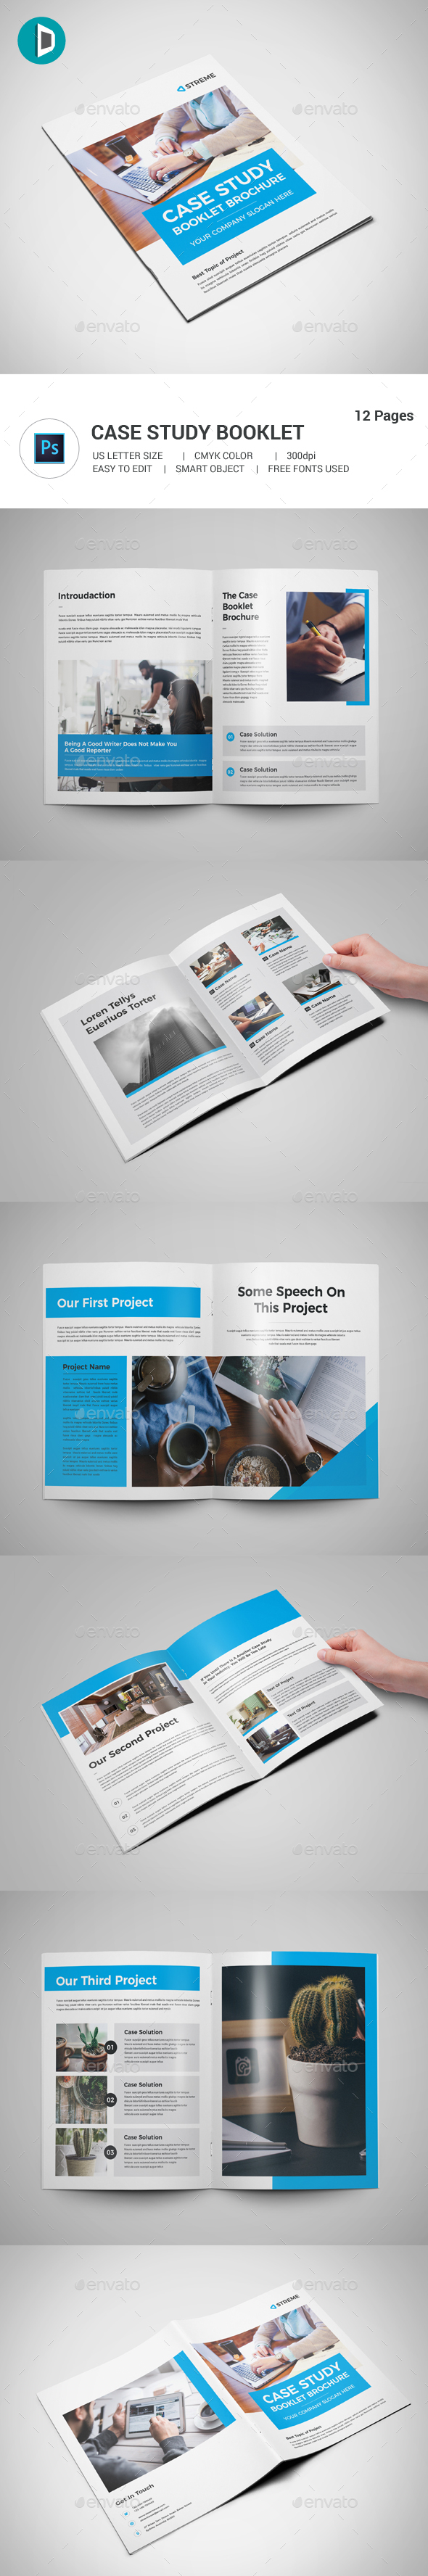 GraphicRiver Case Study Booklet 20803571